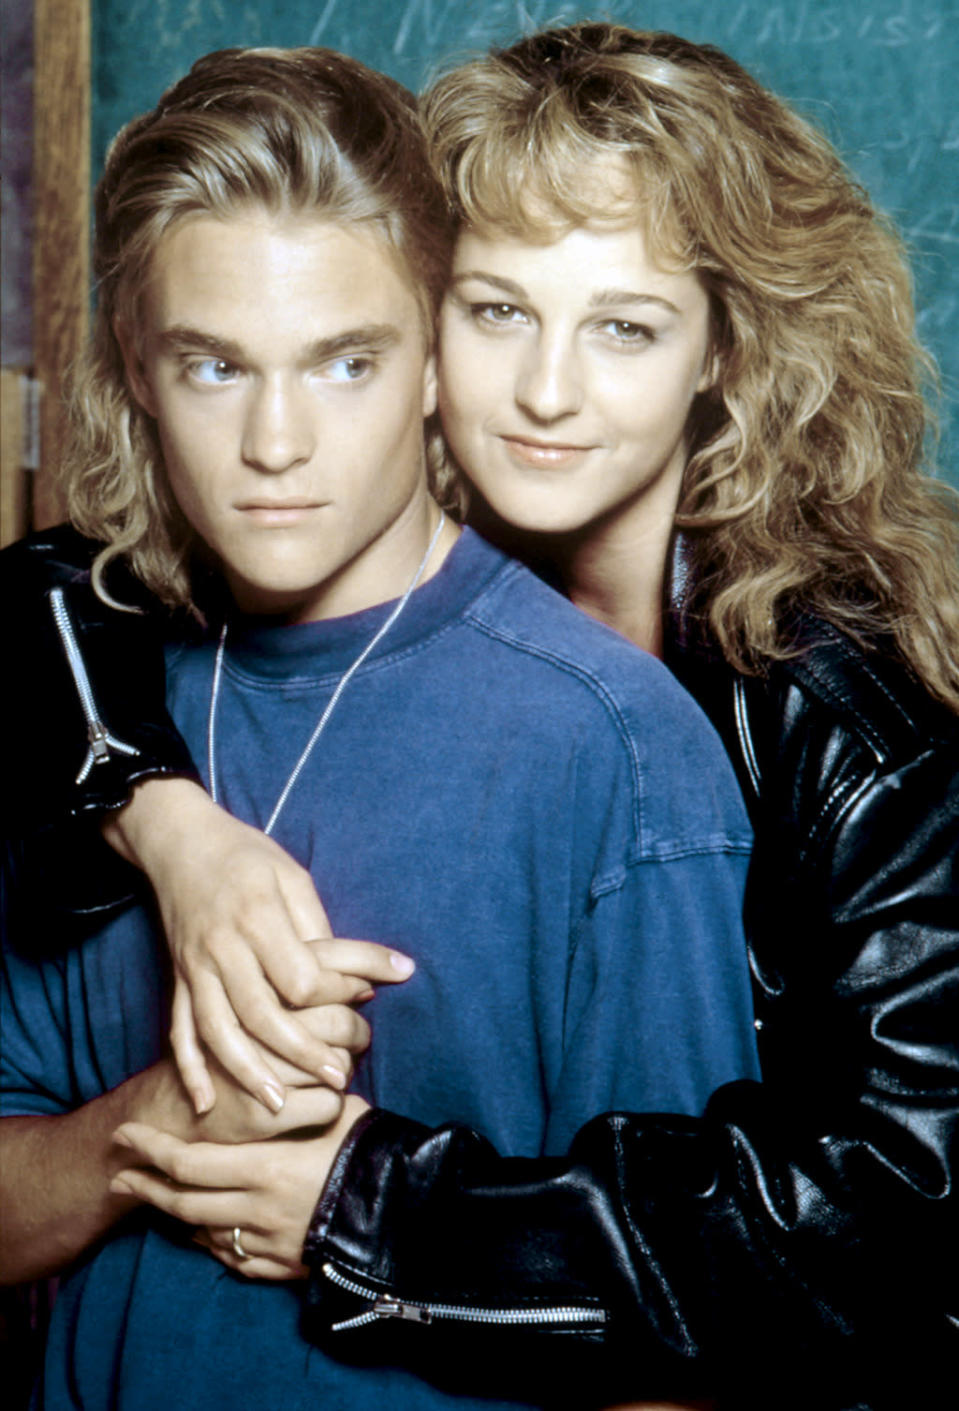 <p><b>Aired:</b> September 24, 1991 on CBS<br><b>Stars:</b> Helen Hunt, Ken Howard, Michael Learned, and Howard Hesseman<br><br><b>Ripped from the headlines about:</b> Pamela Smart (pre-Oscar, pre-<i>Mad About You</i> Hunt), who was convicted of convincing her 15-year-old student and lover Billy Flynn and his friends to murder her 24-year-old husband in 1990, because she didn't want to be married anymore. Smart was sentenced to life in prison without the possibility of parole after the teens testified against her, and her story also inspired the 1990 big-screen movie <i>To Die For</i>, which earned Nicole Kidman a Golden Globe for her portrayal of Smart-like Suzanne Stone.<br><br><i>(Credit: Everett Collection)</i> </p>